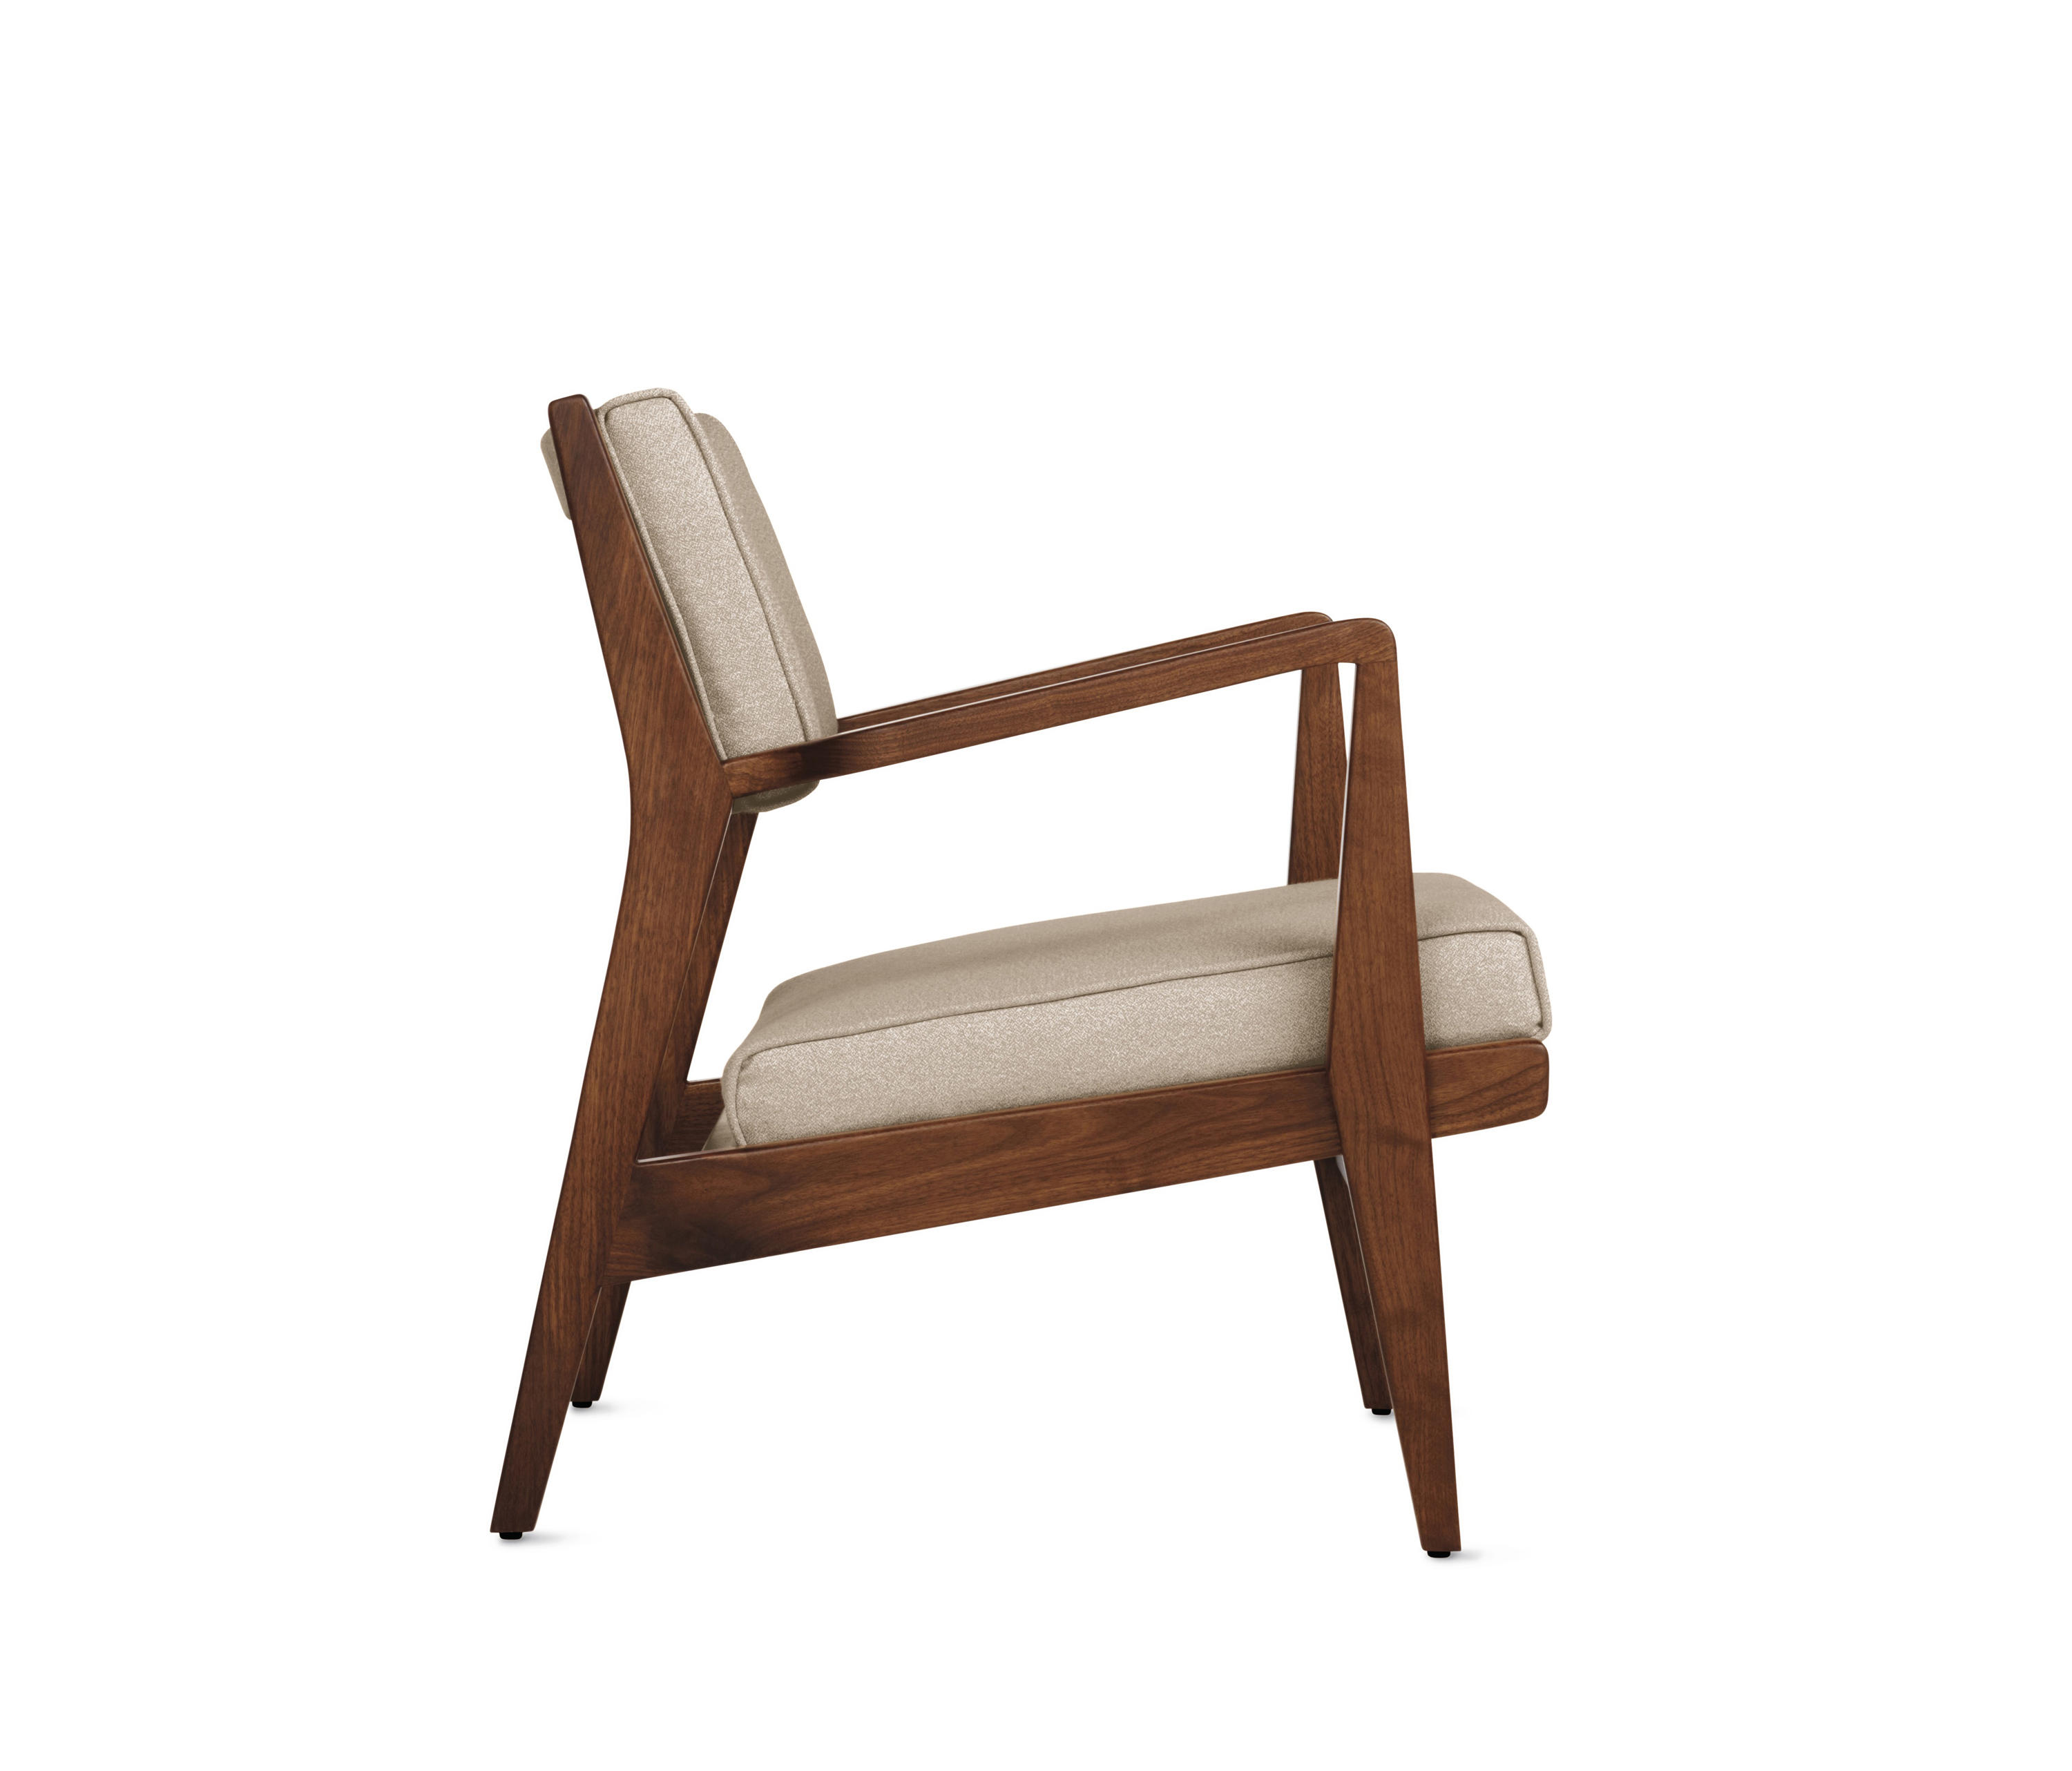 JENS CHAIR - Armchairs from Design Within Reach | Architonic